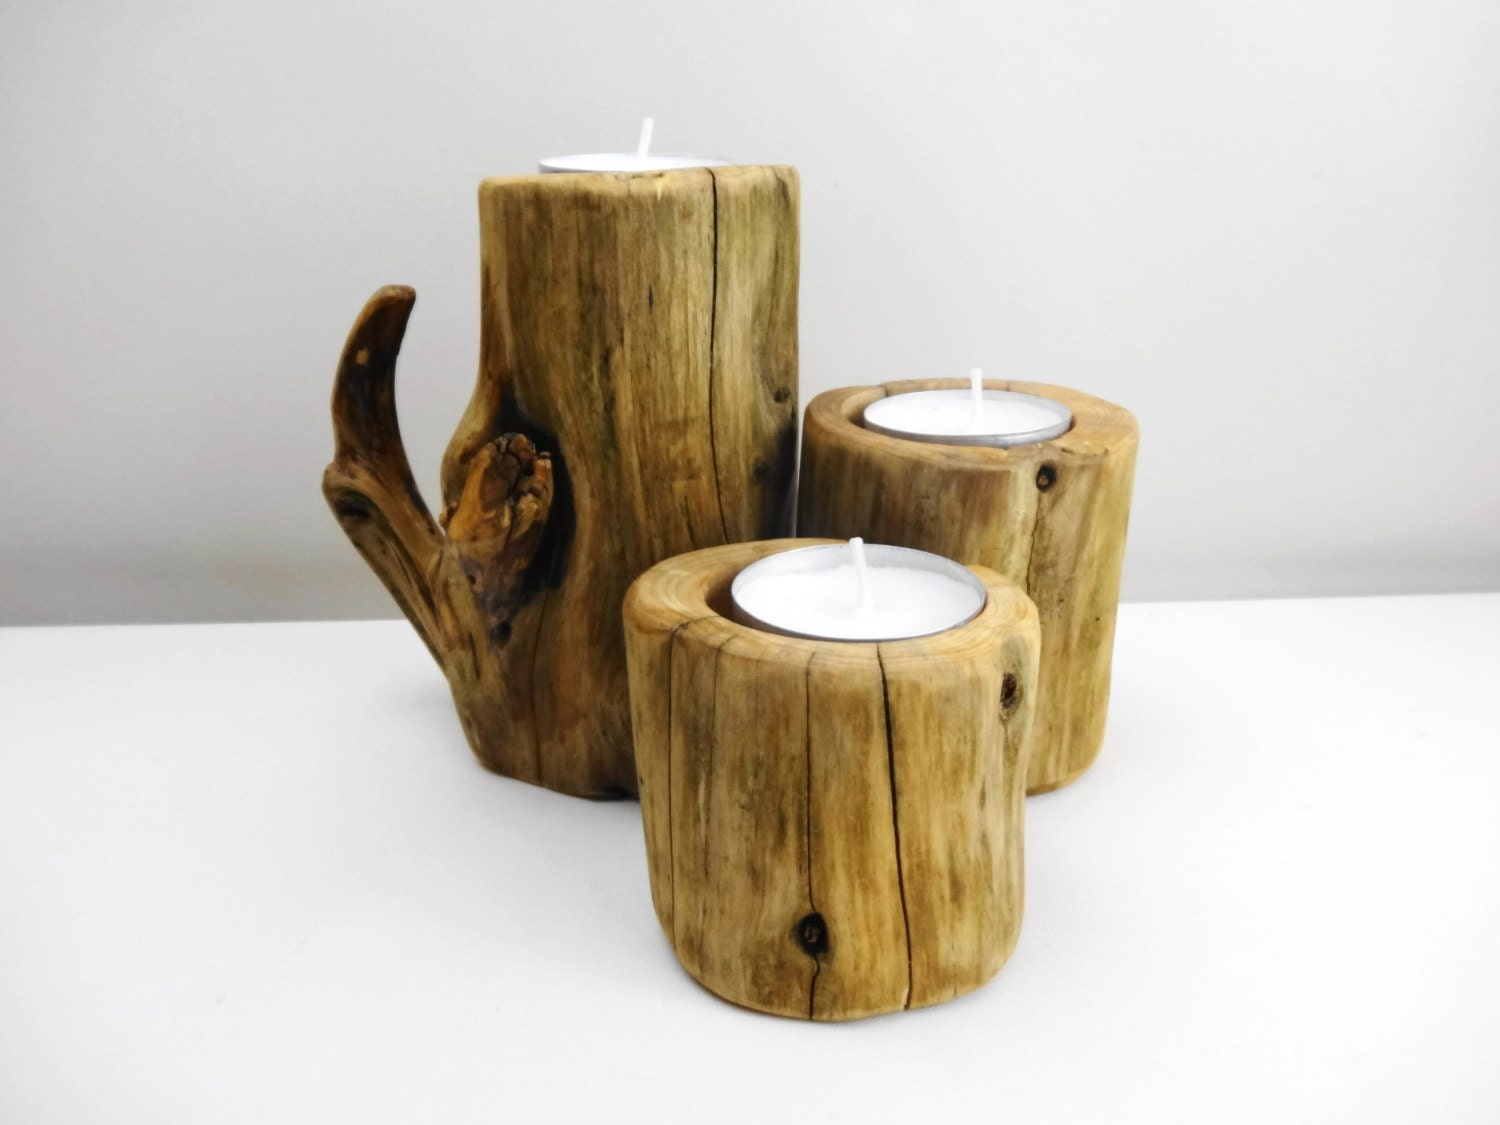 Wood candle holders wooden candle holder branch by Wood candle holders